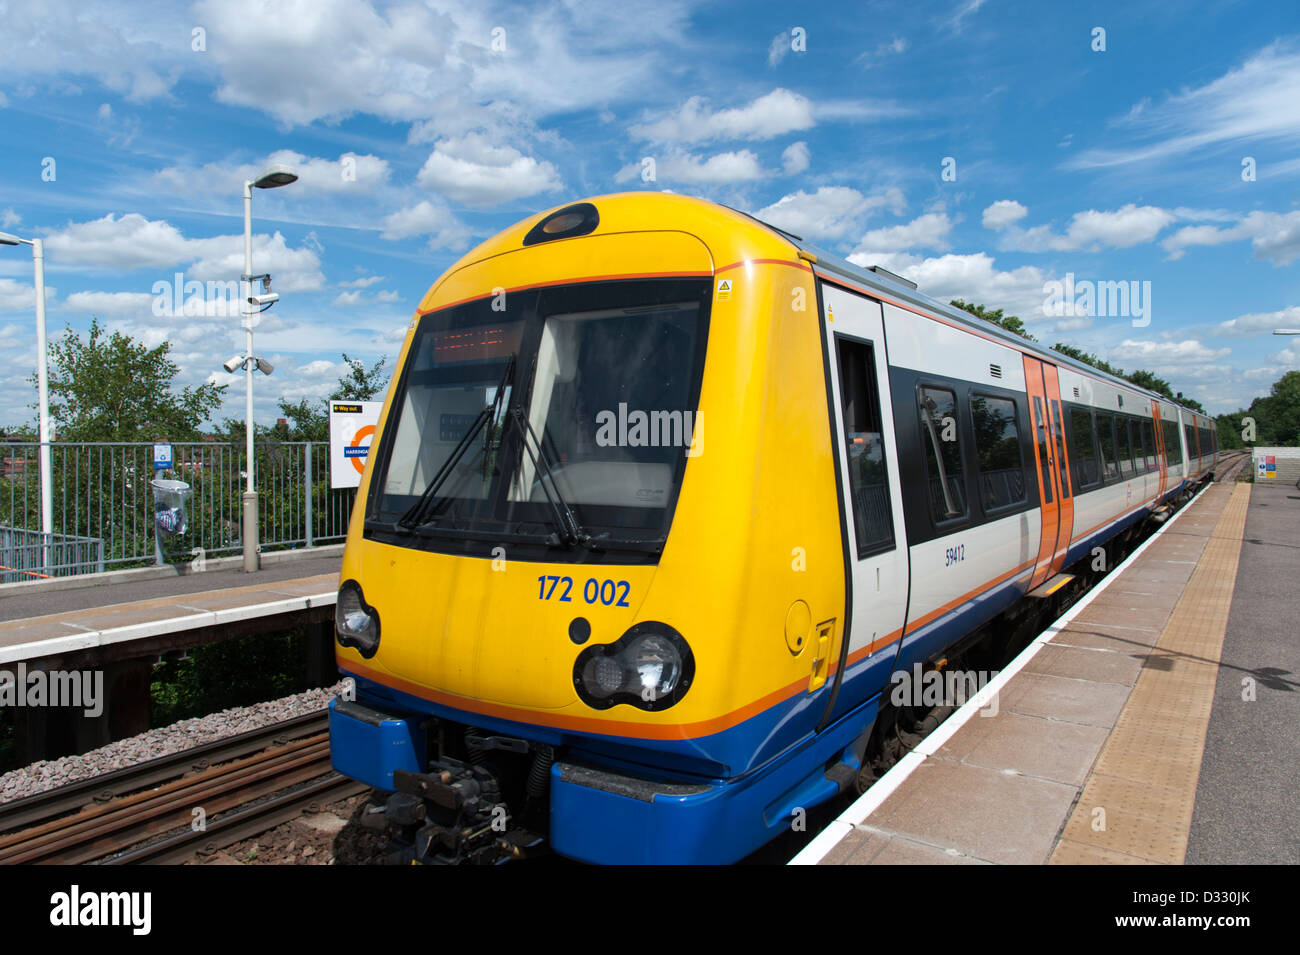 London Overground train on the Gospel Oak to Barking line, England, UK - Stock Image